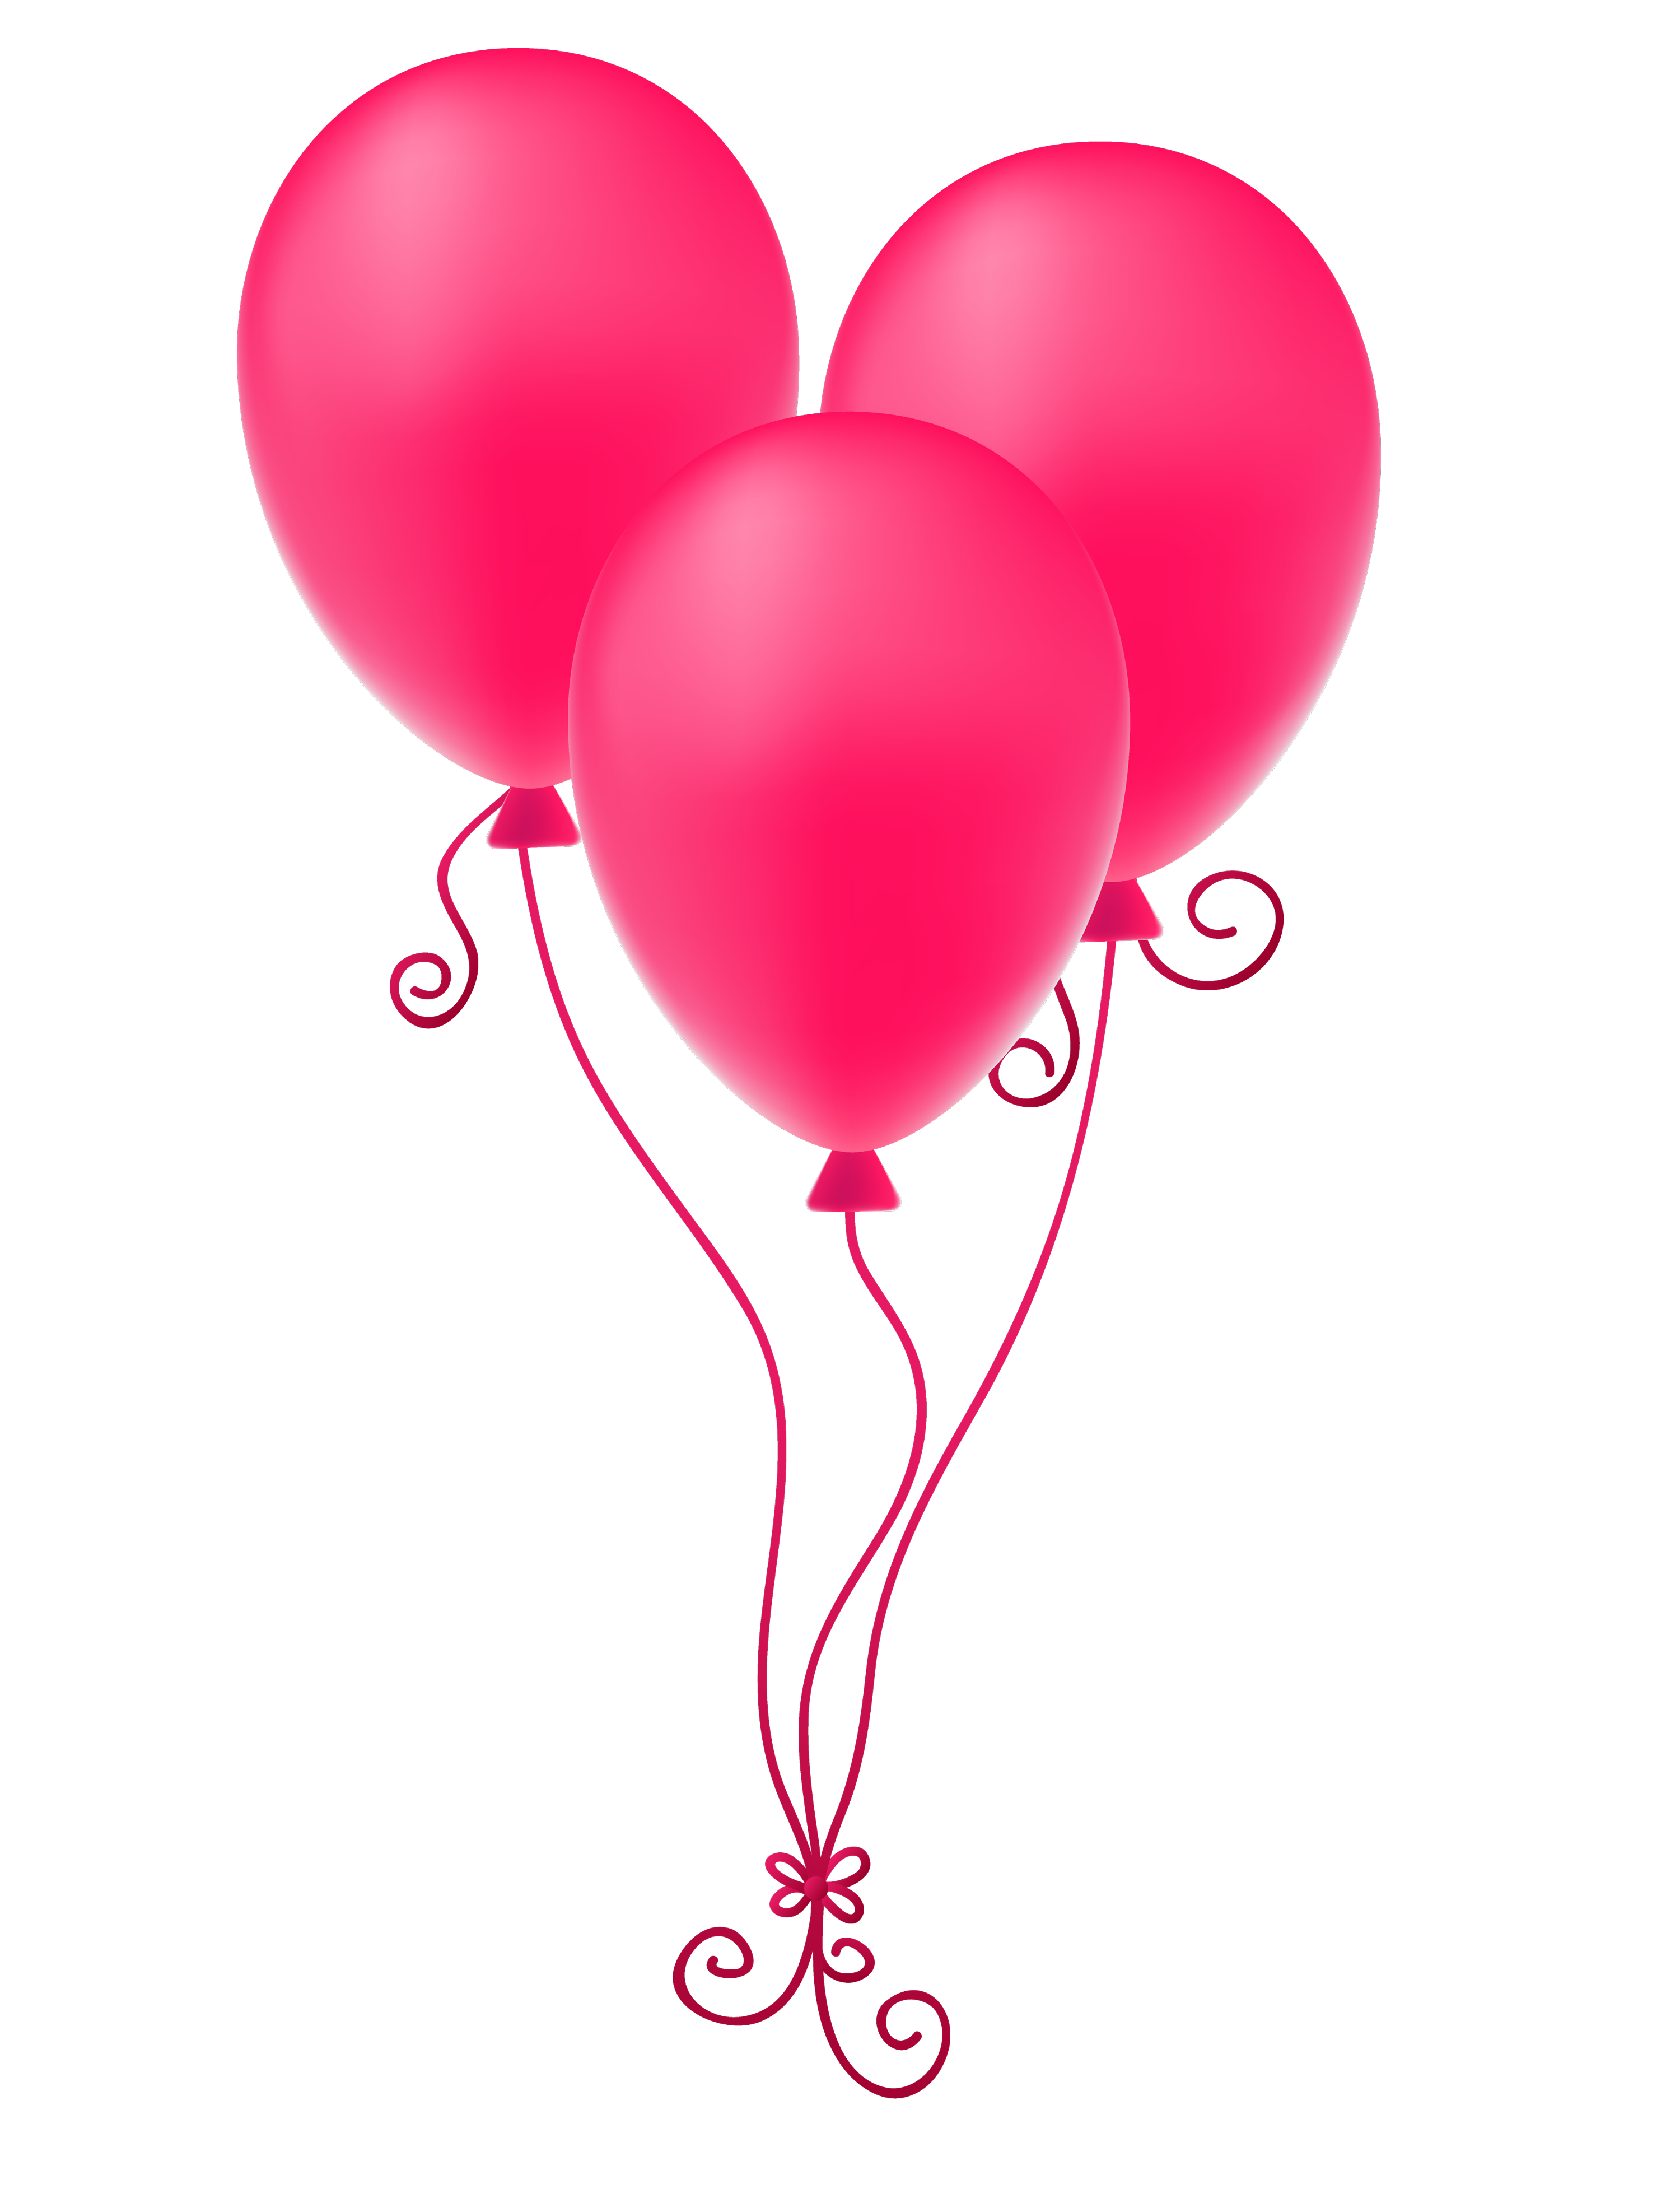 Pink balloons png. Image transparent best stock